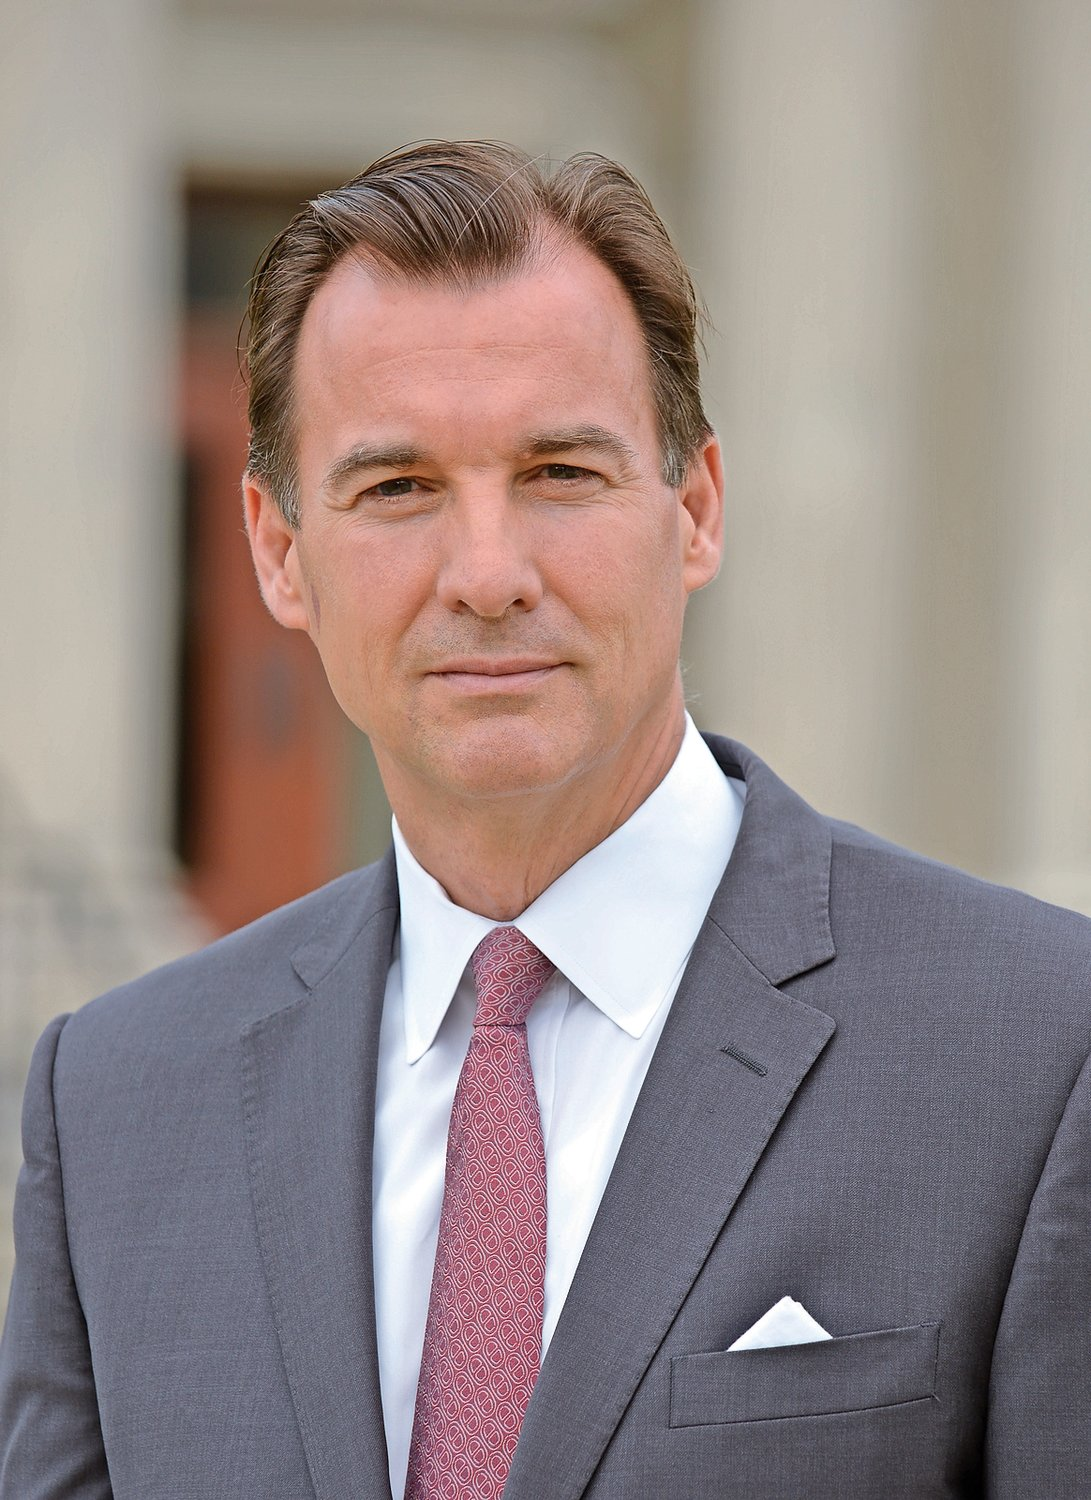 U.S. Rep. Thomas Suozzi was named to the House of Representatives' Committee on Ways and Means on Thursday.